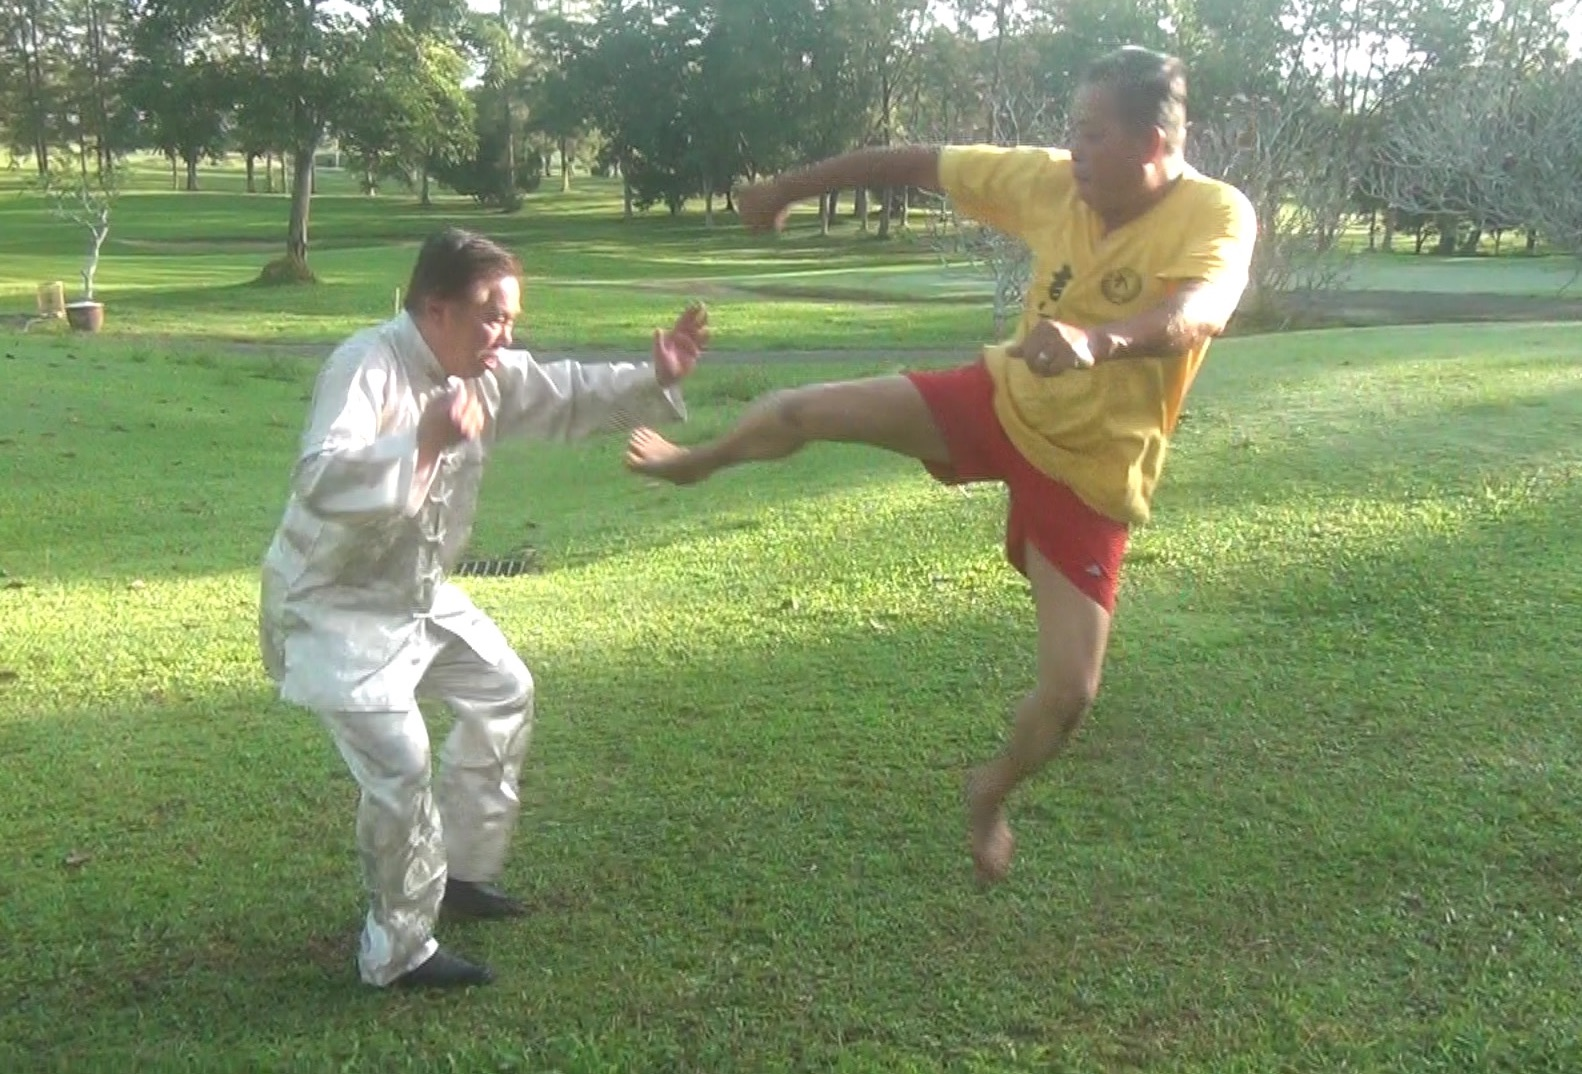 Shaolin against Muay Thai